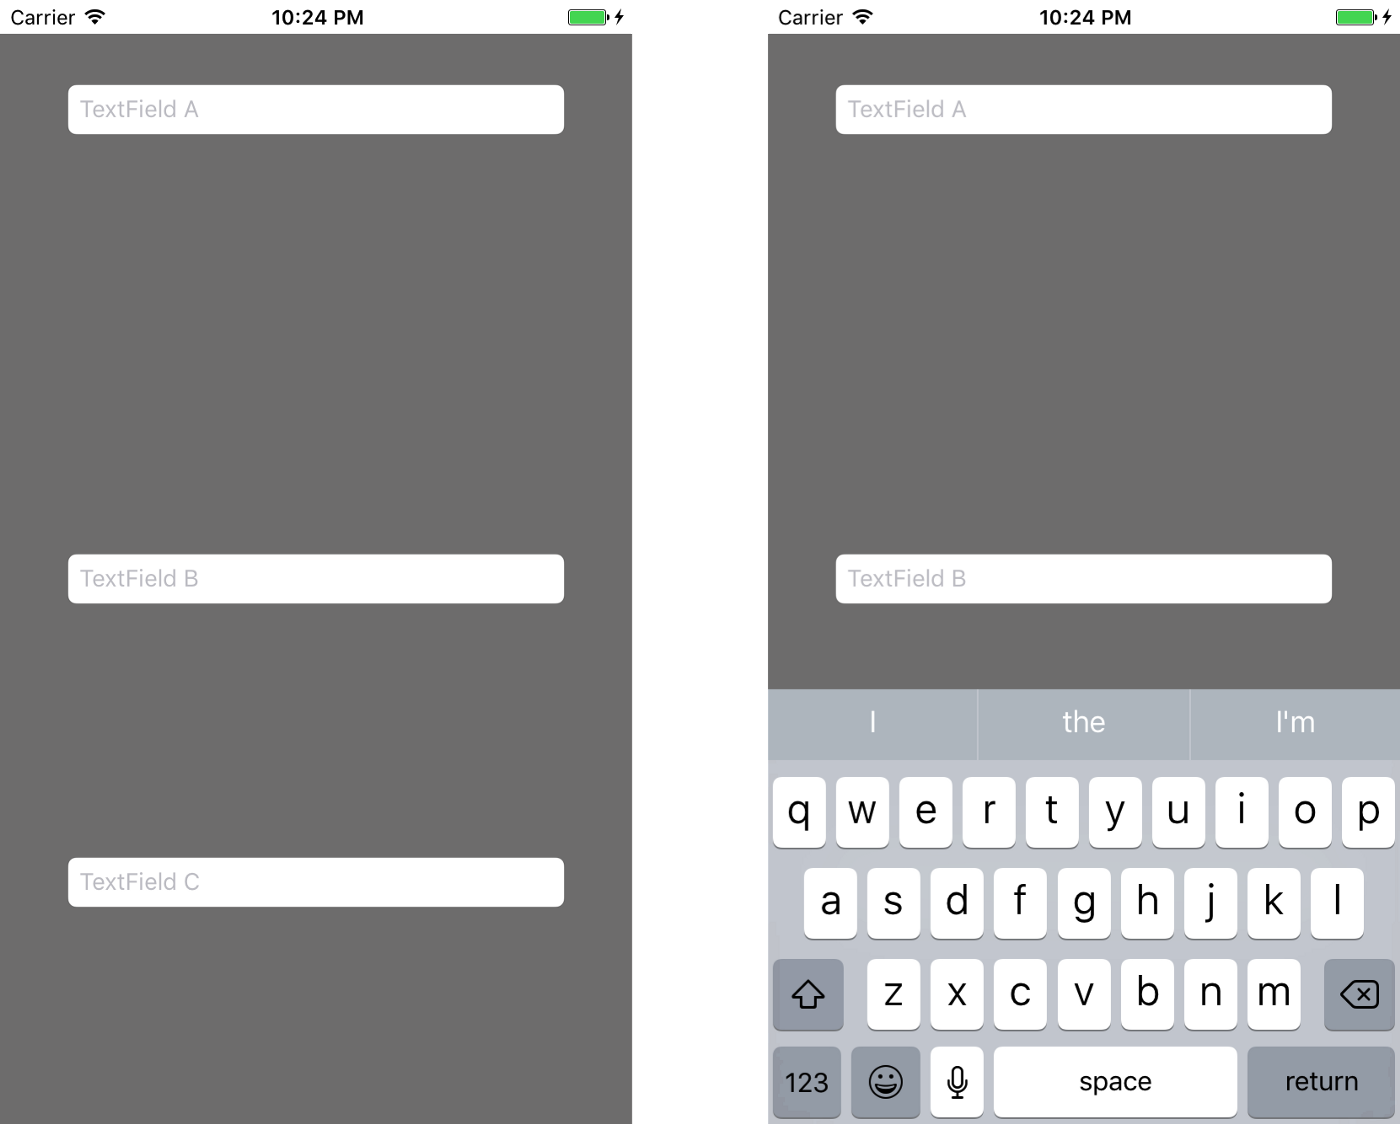 Autolayout for ScrollView + Keyboard Handling in iOS